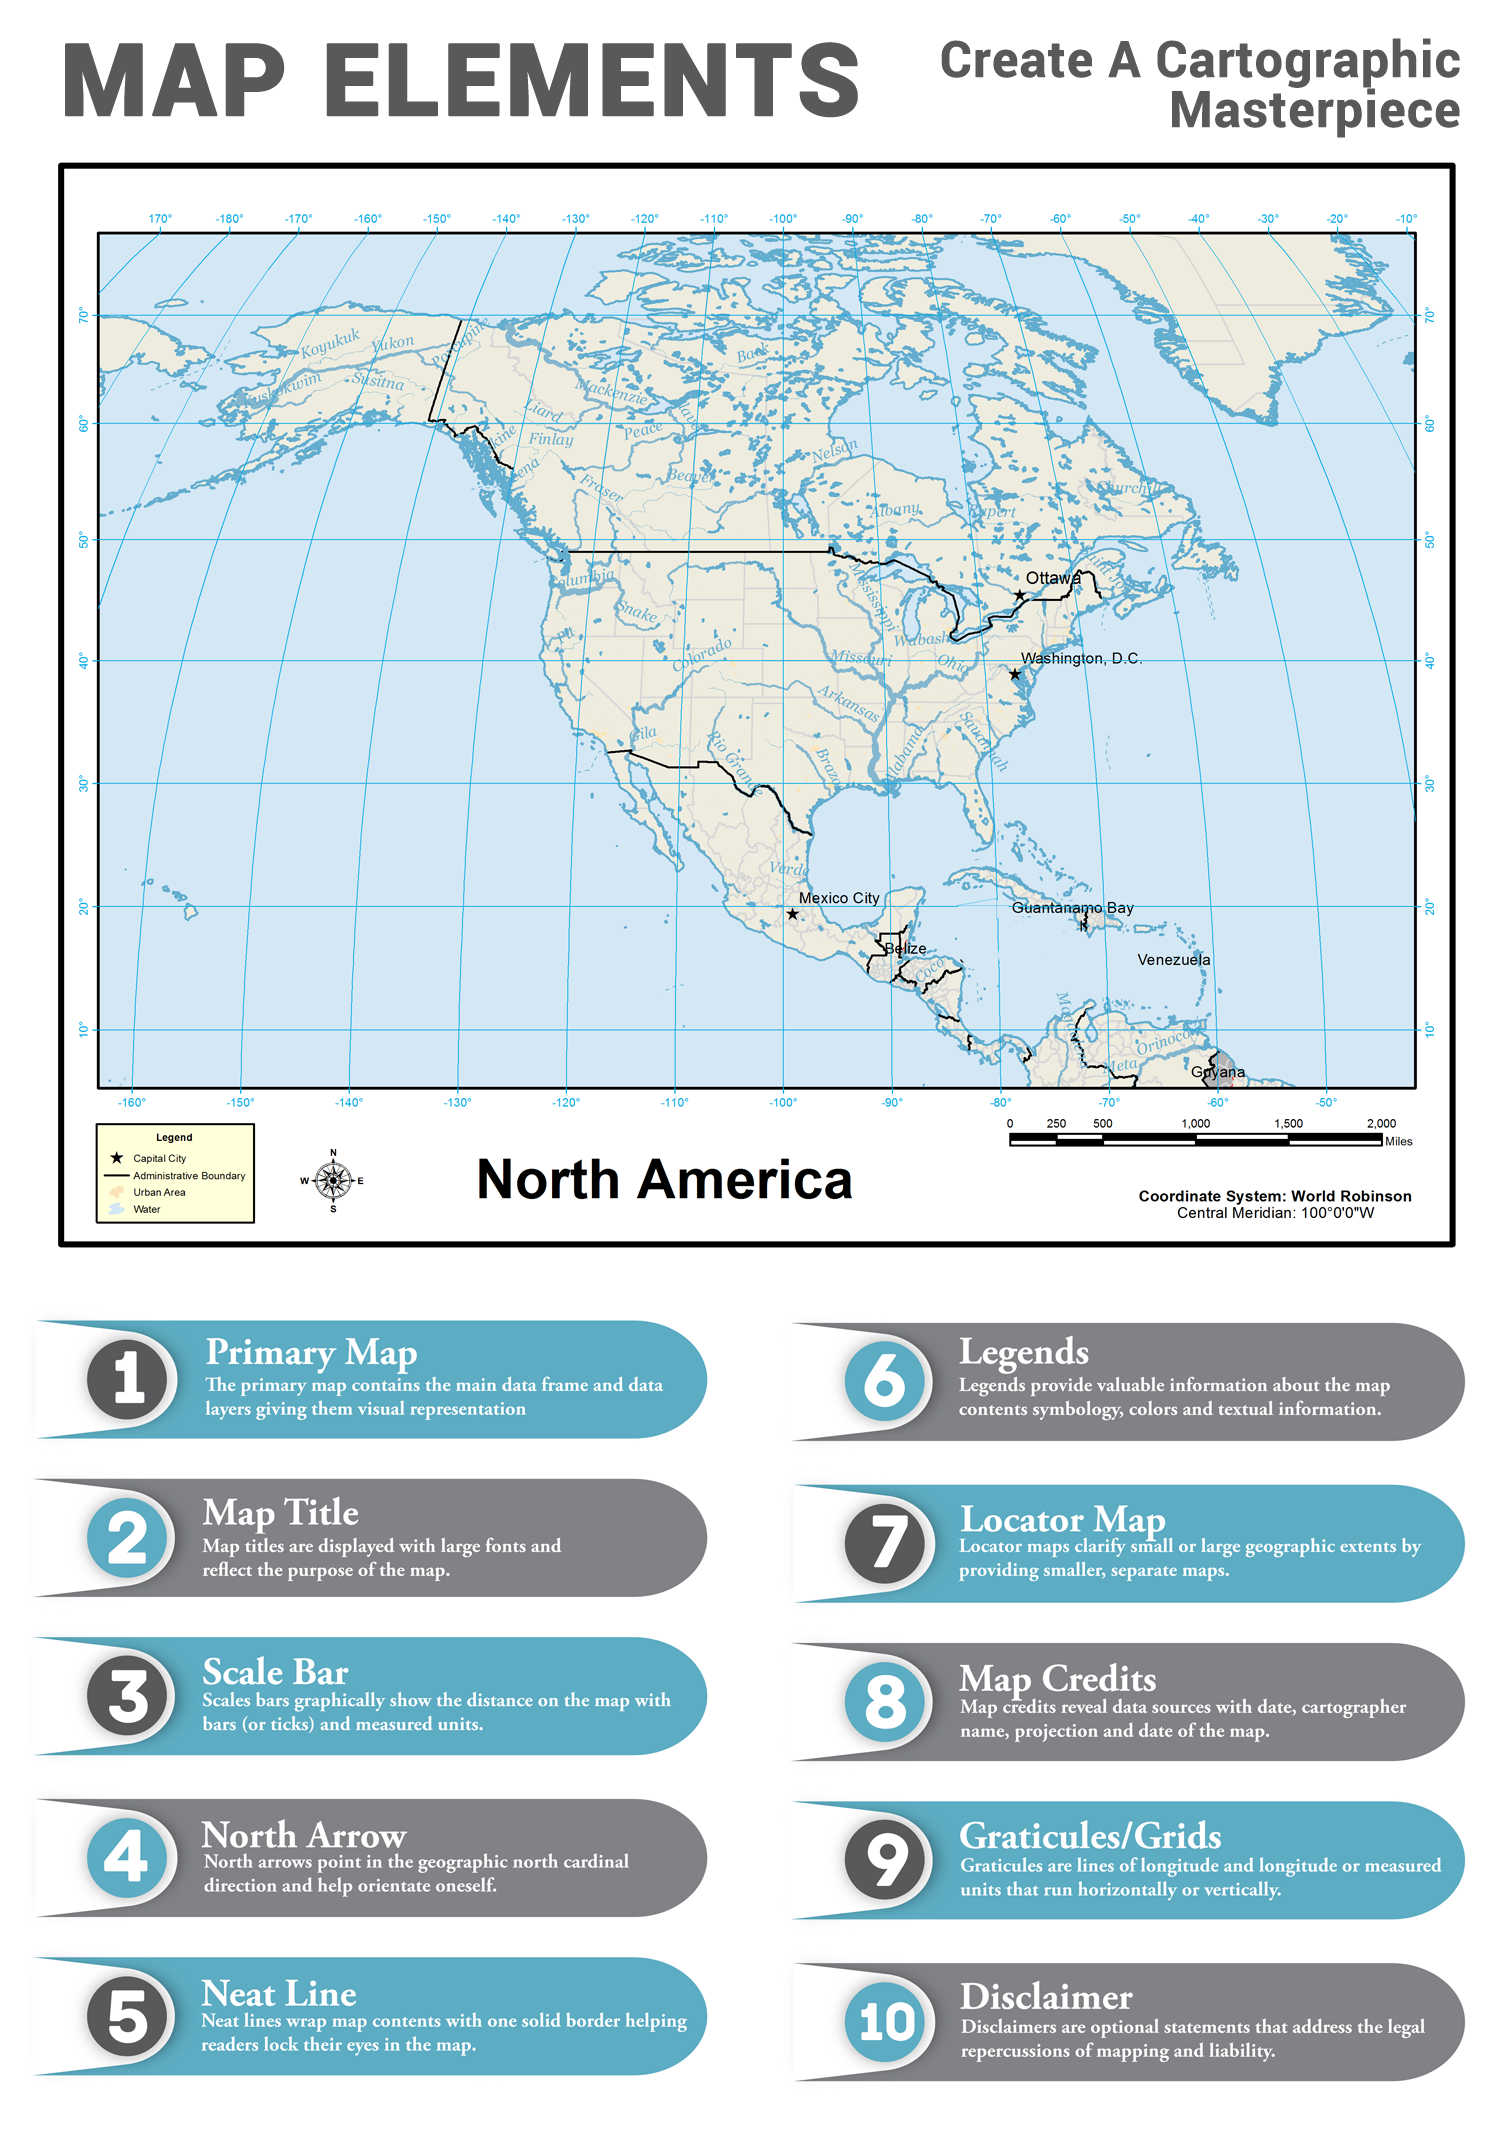 Map Making Checklist How To Create Epic Maps